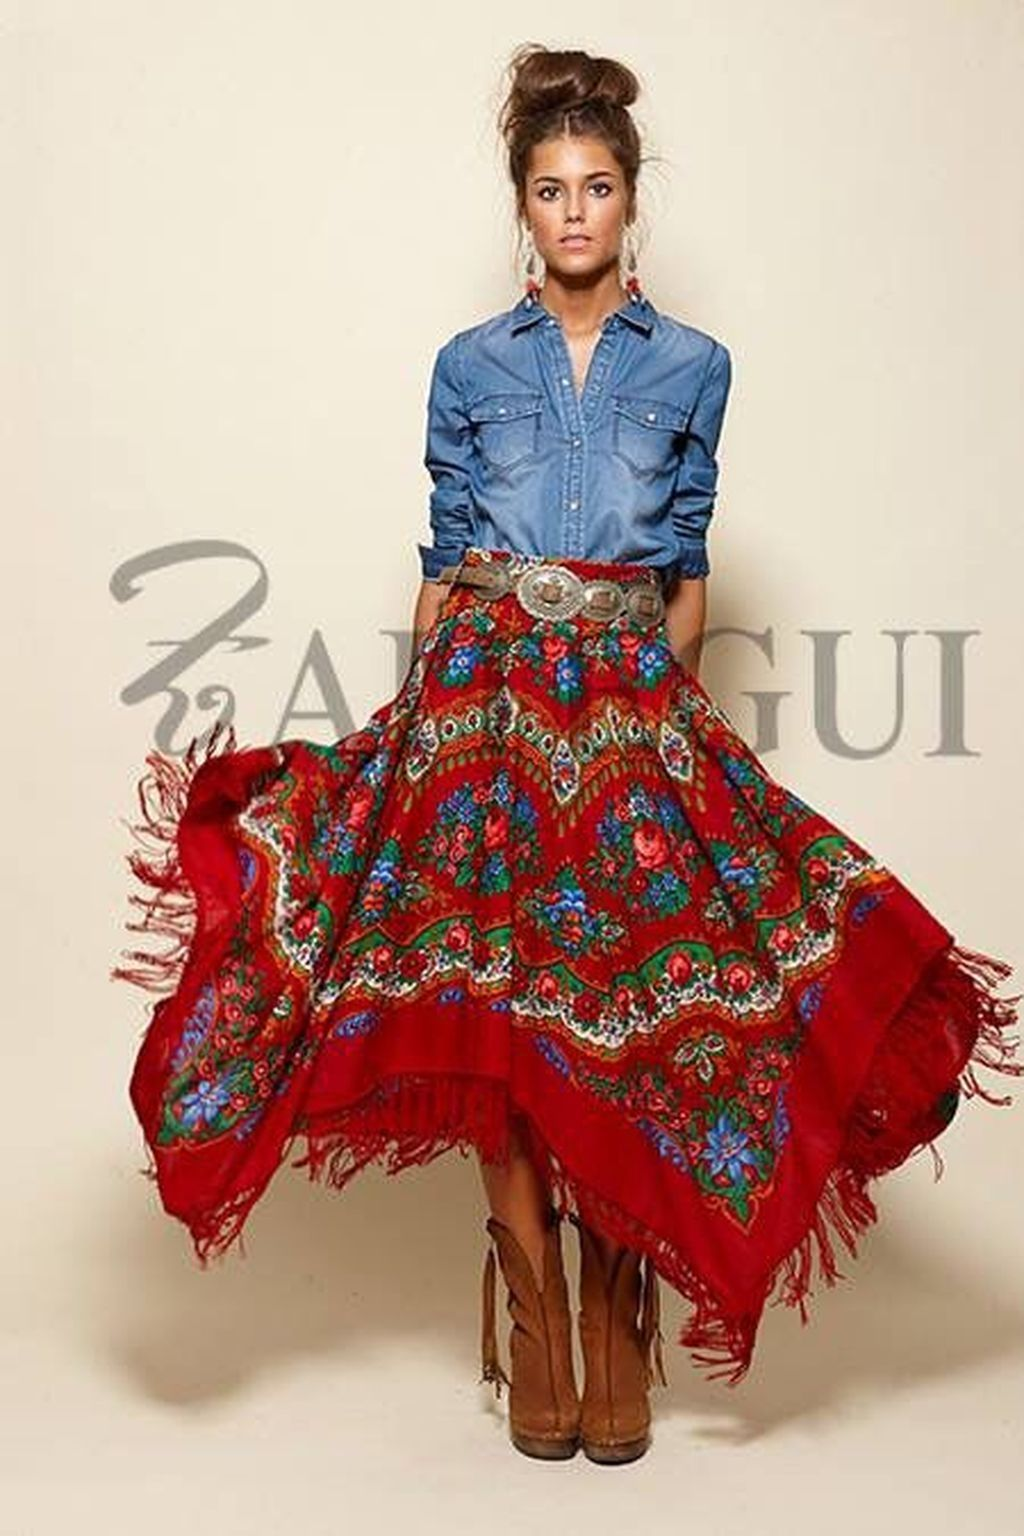 745ef452fa22 42 Stunning Boho Chic Outfit Every Girl Should Try   Women Fashion ...